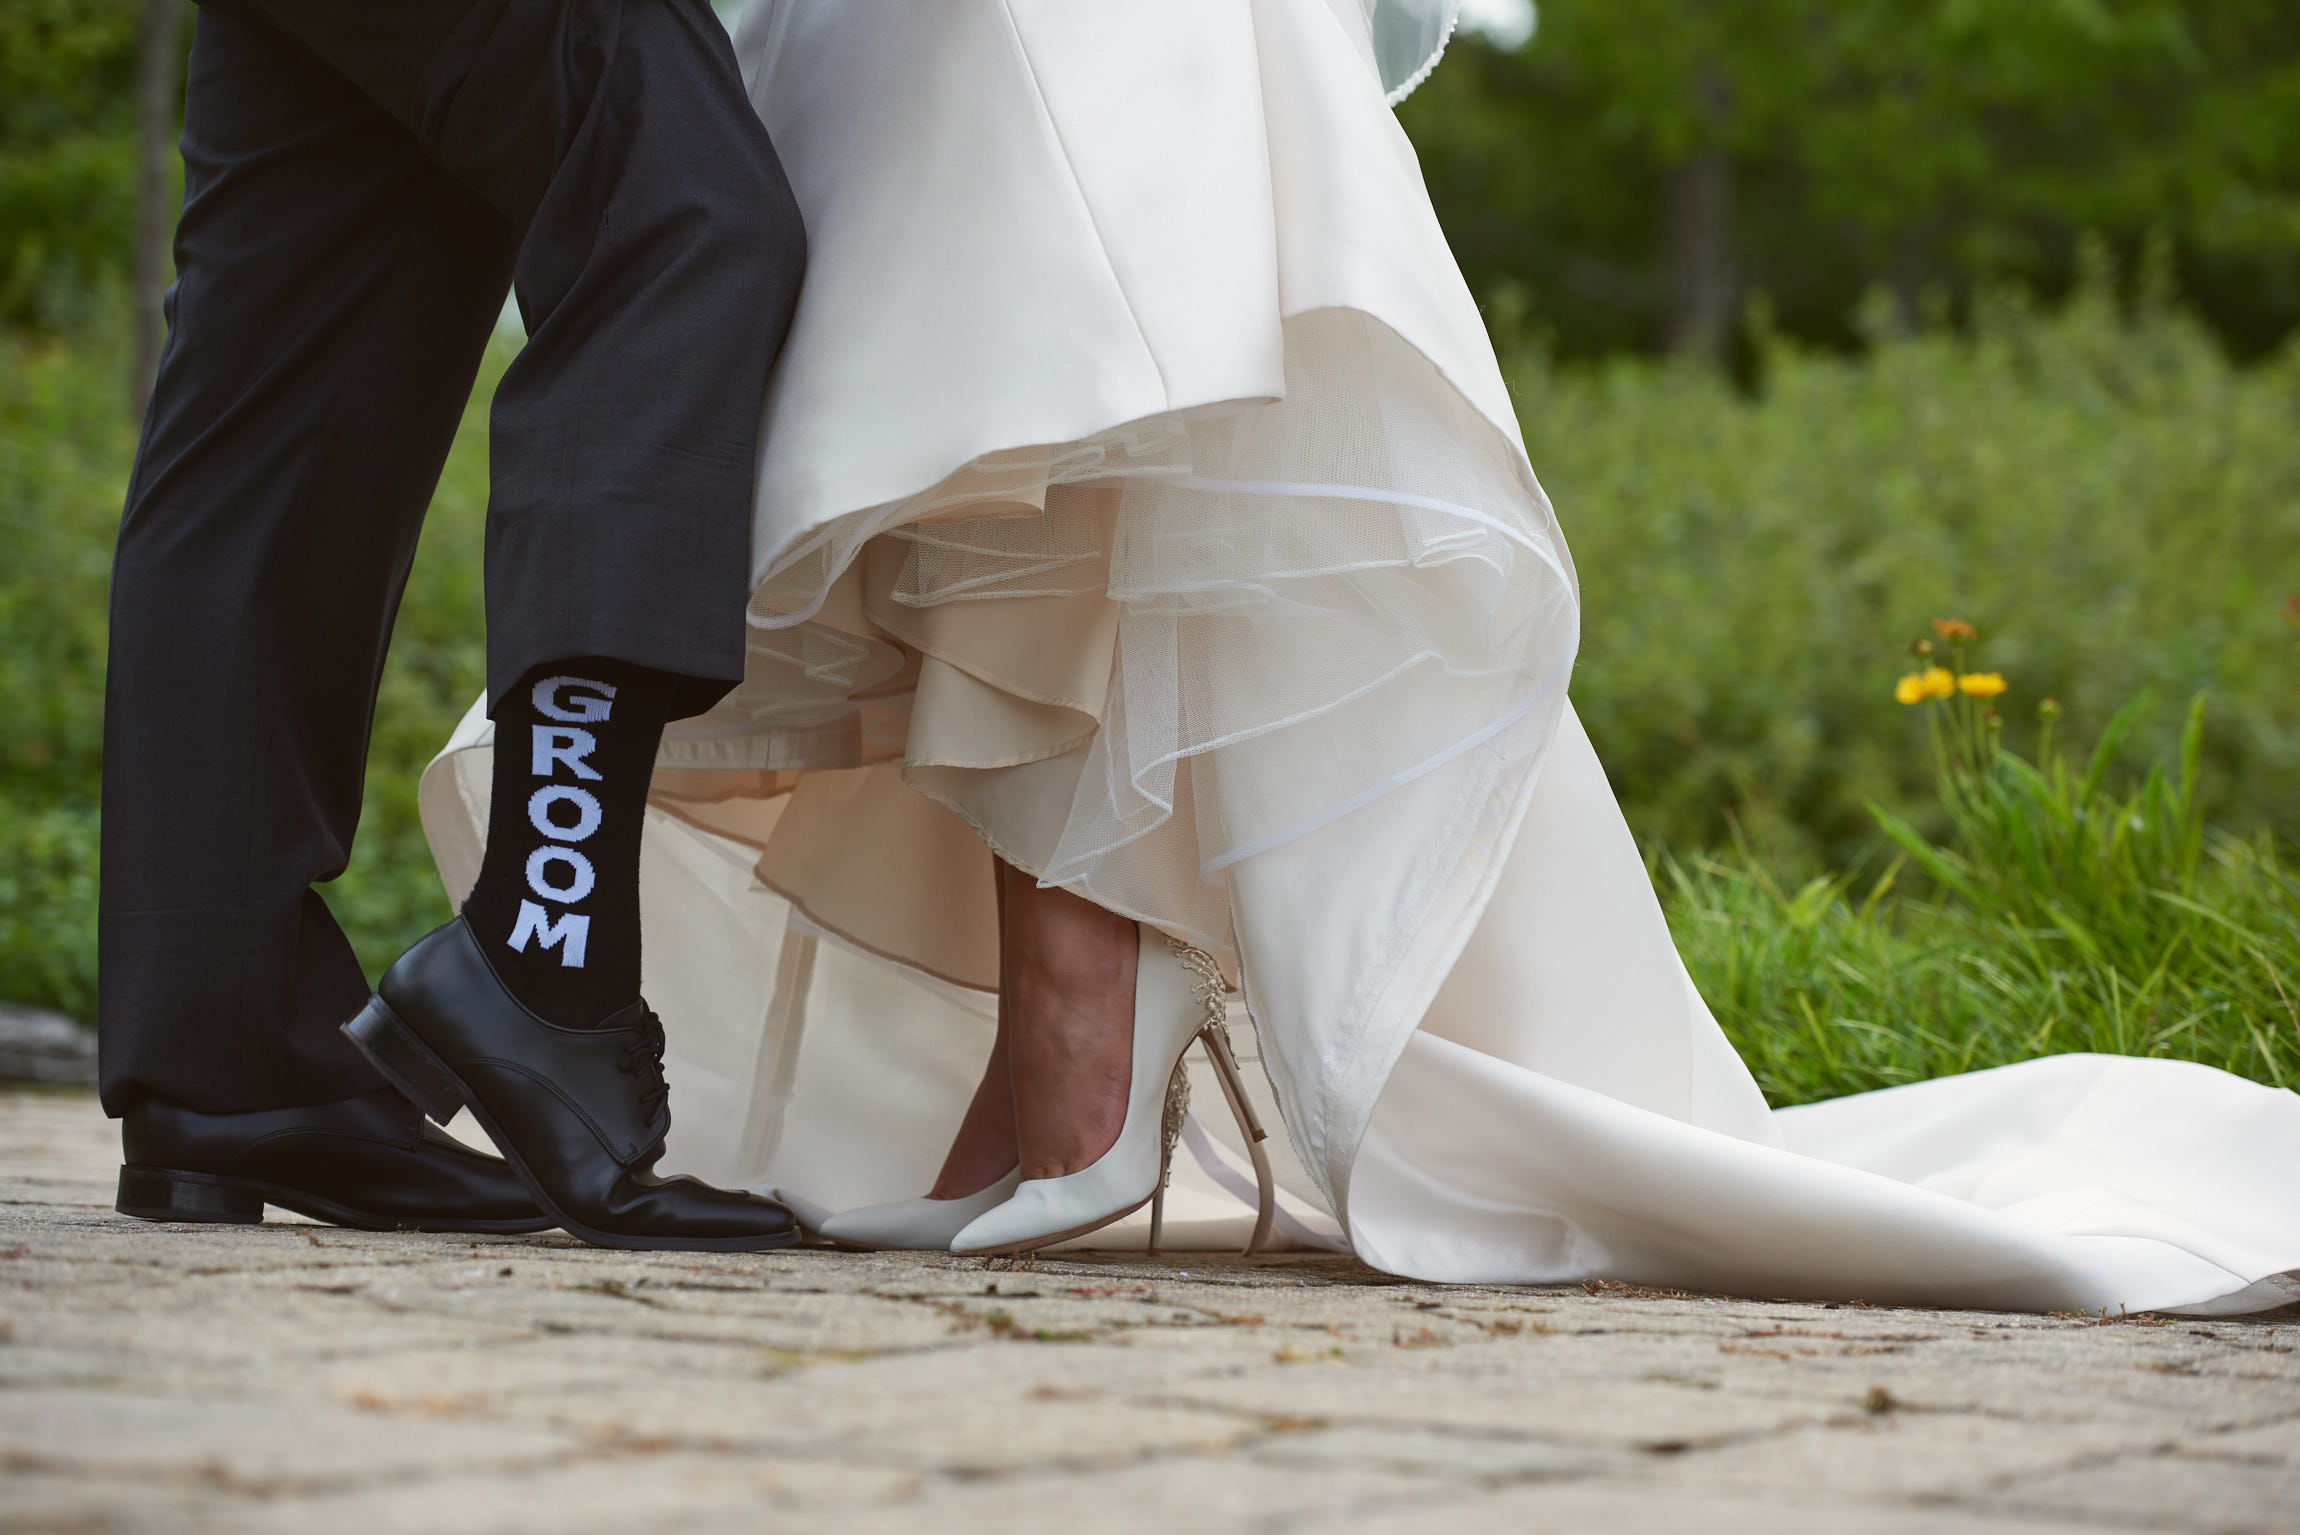 Bride showing shoe and groom showing socks